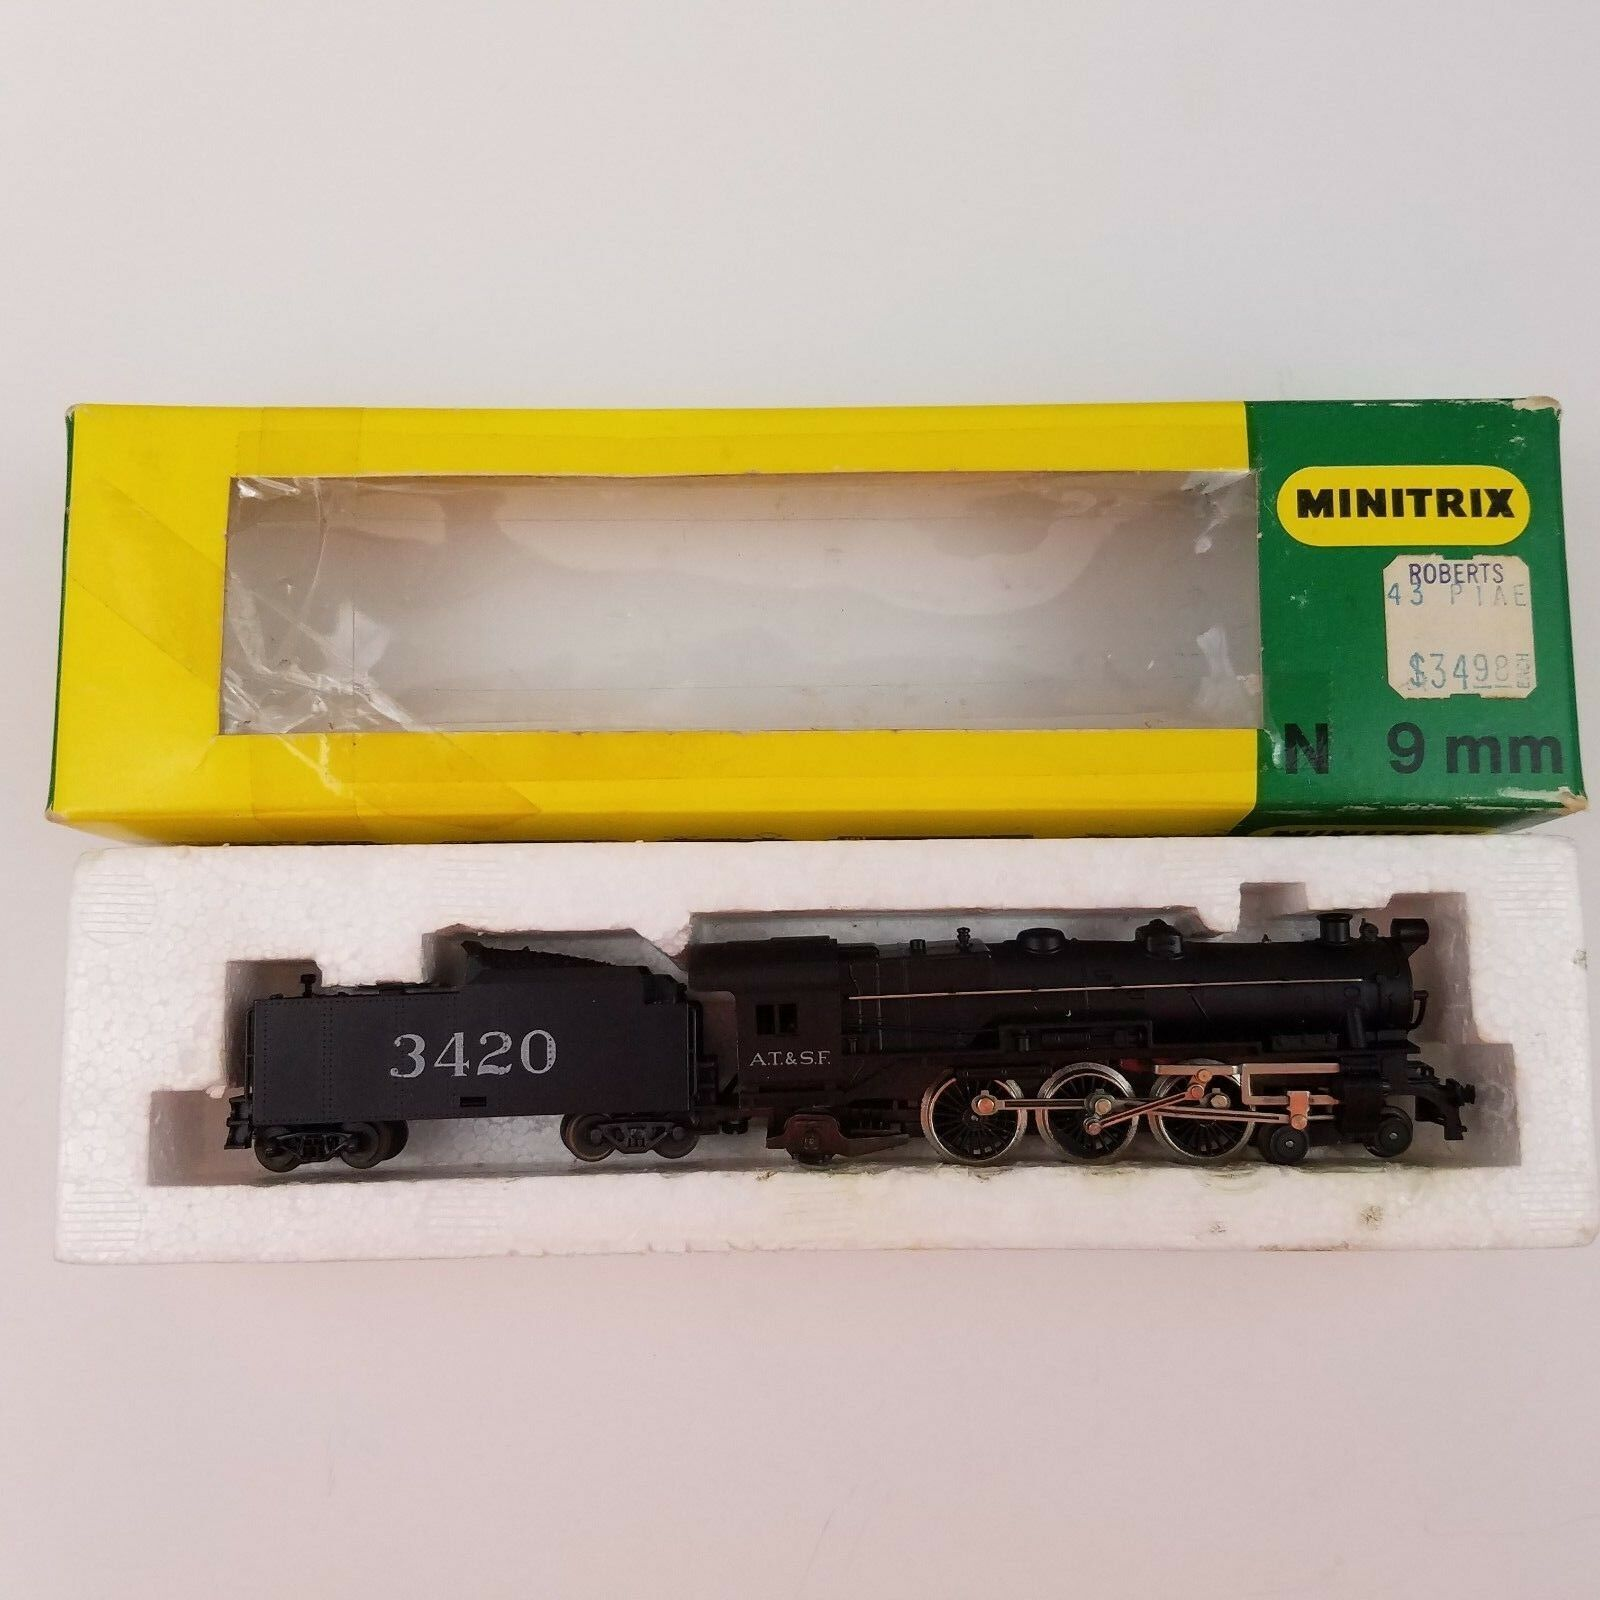 MINITRIX N Scale 4-6-2 Steam Locomotive Engine and Tender AT&SF 3420  51 2990 00